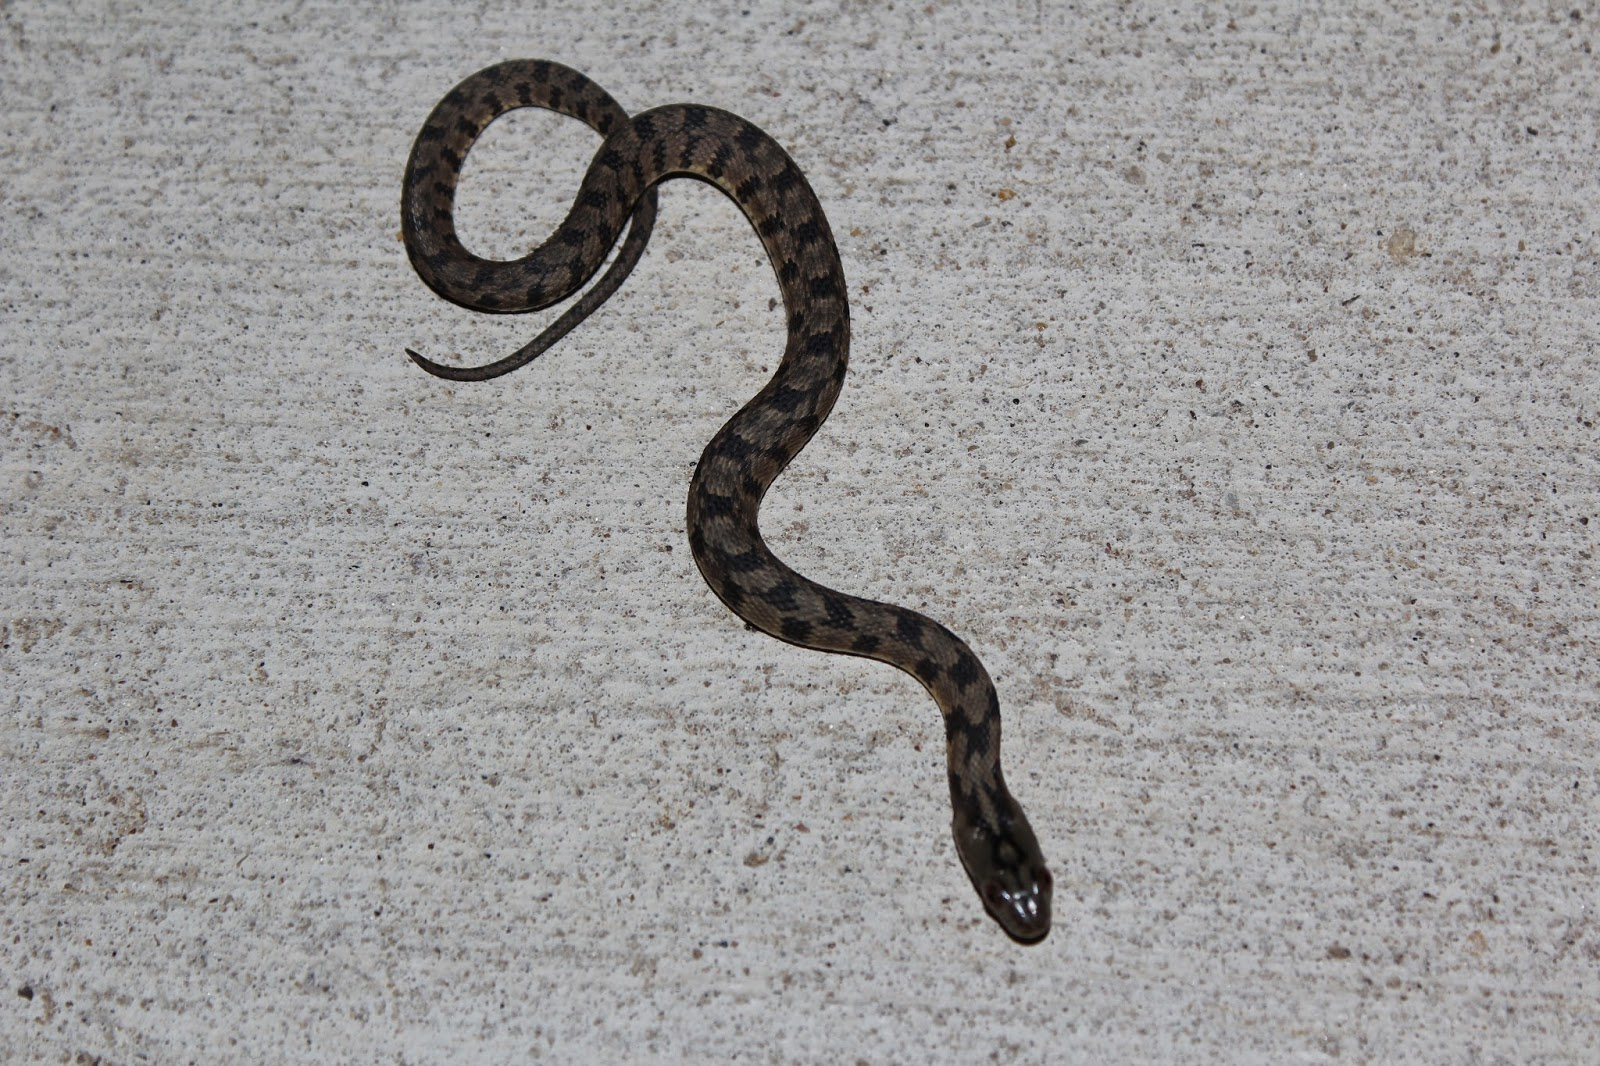 Alabama black snake 3 - 5 1